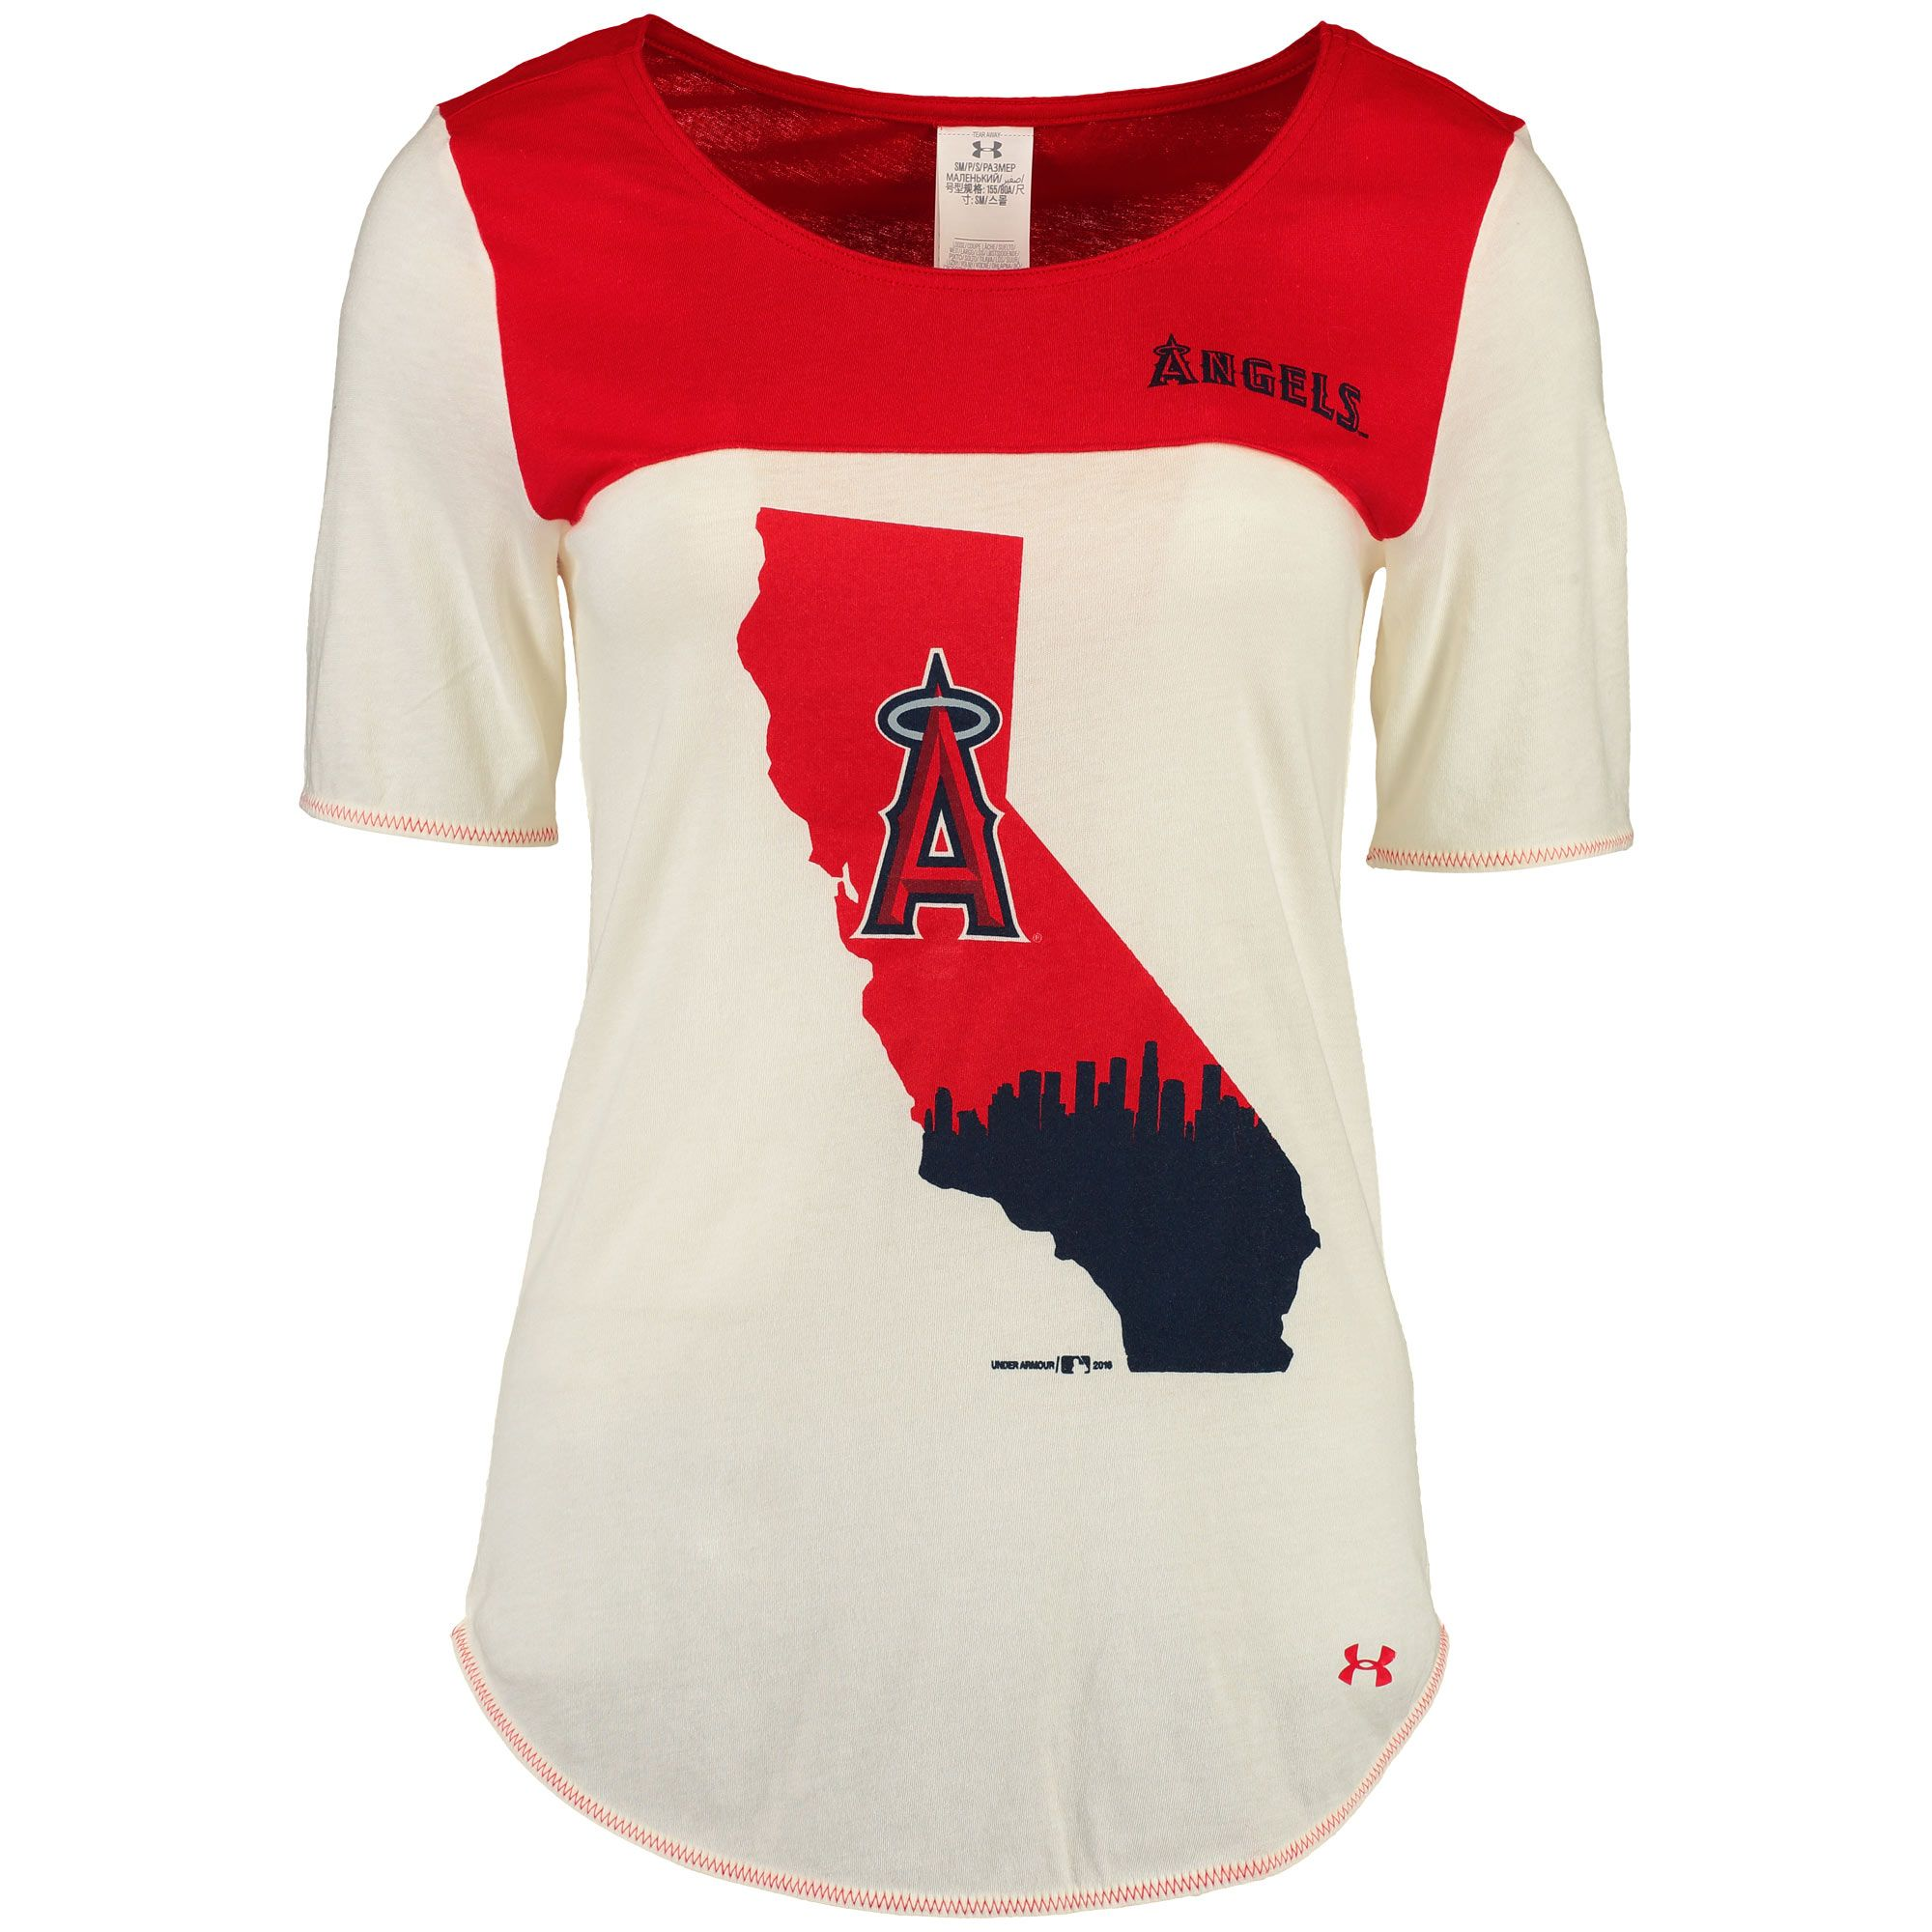 MLB Los Angeles Angels of Anaheim Under Armour Women s Shirzee T-Shirt -  White  3c4d59710d